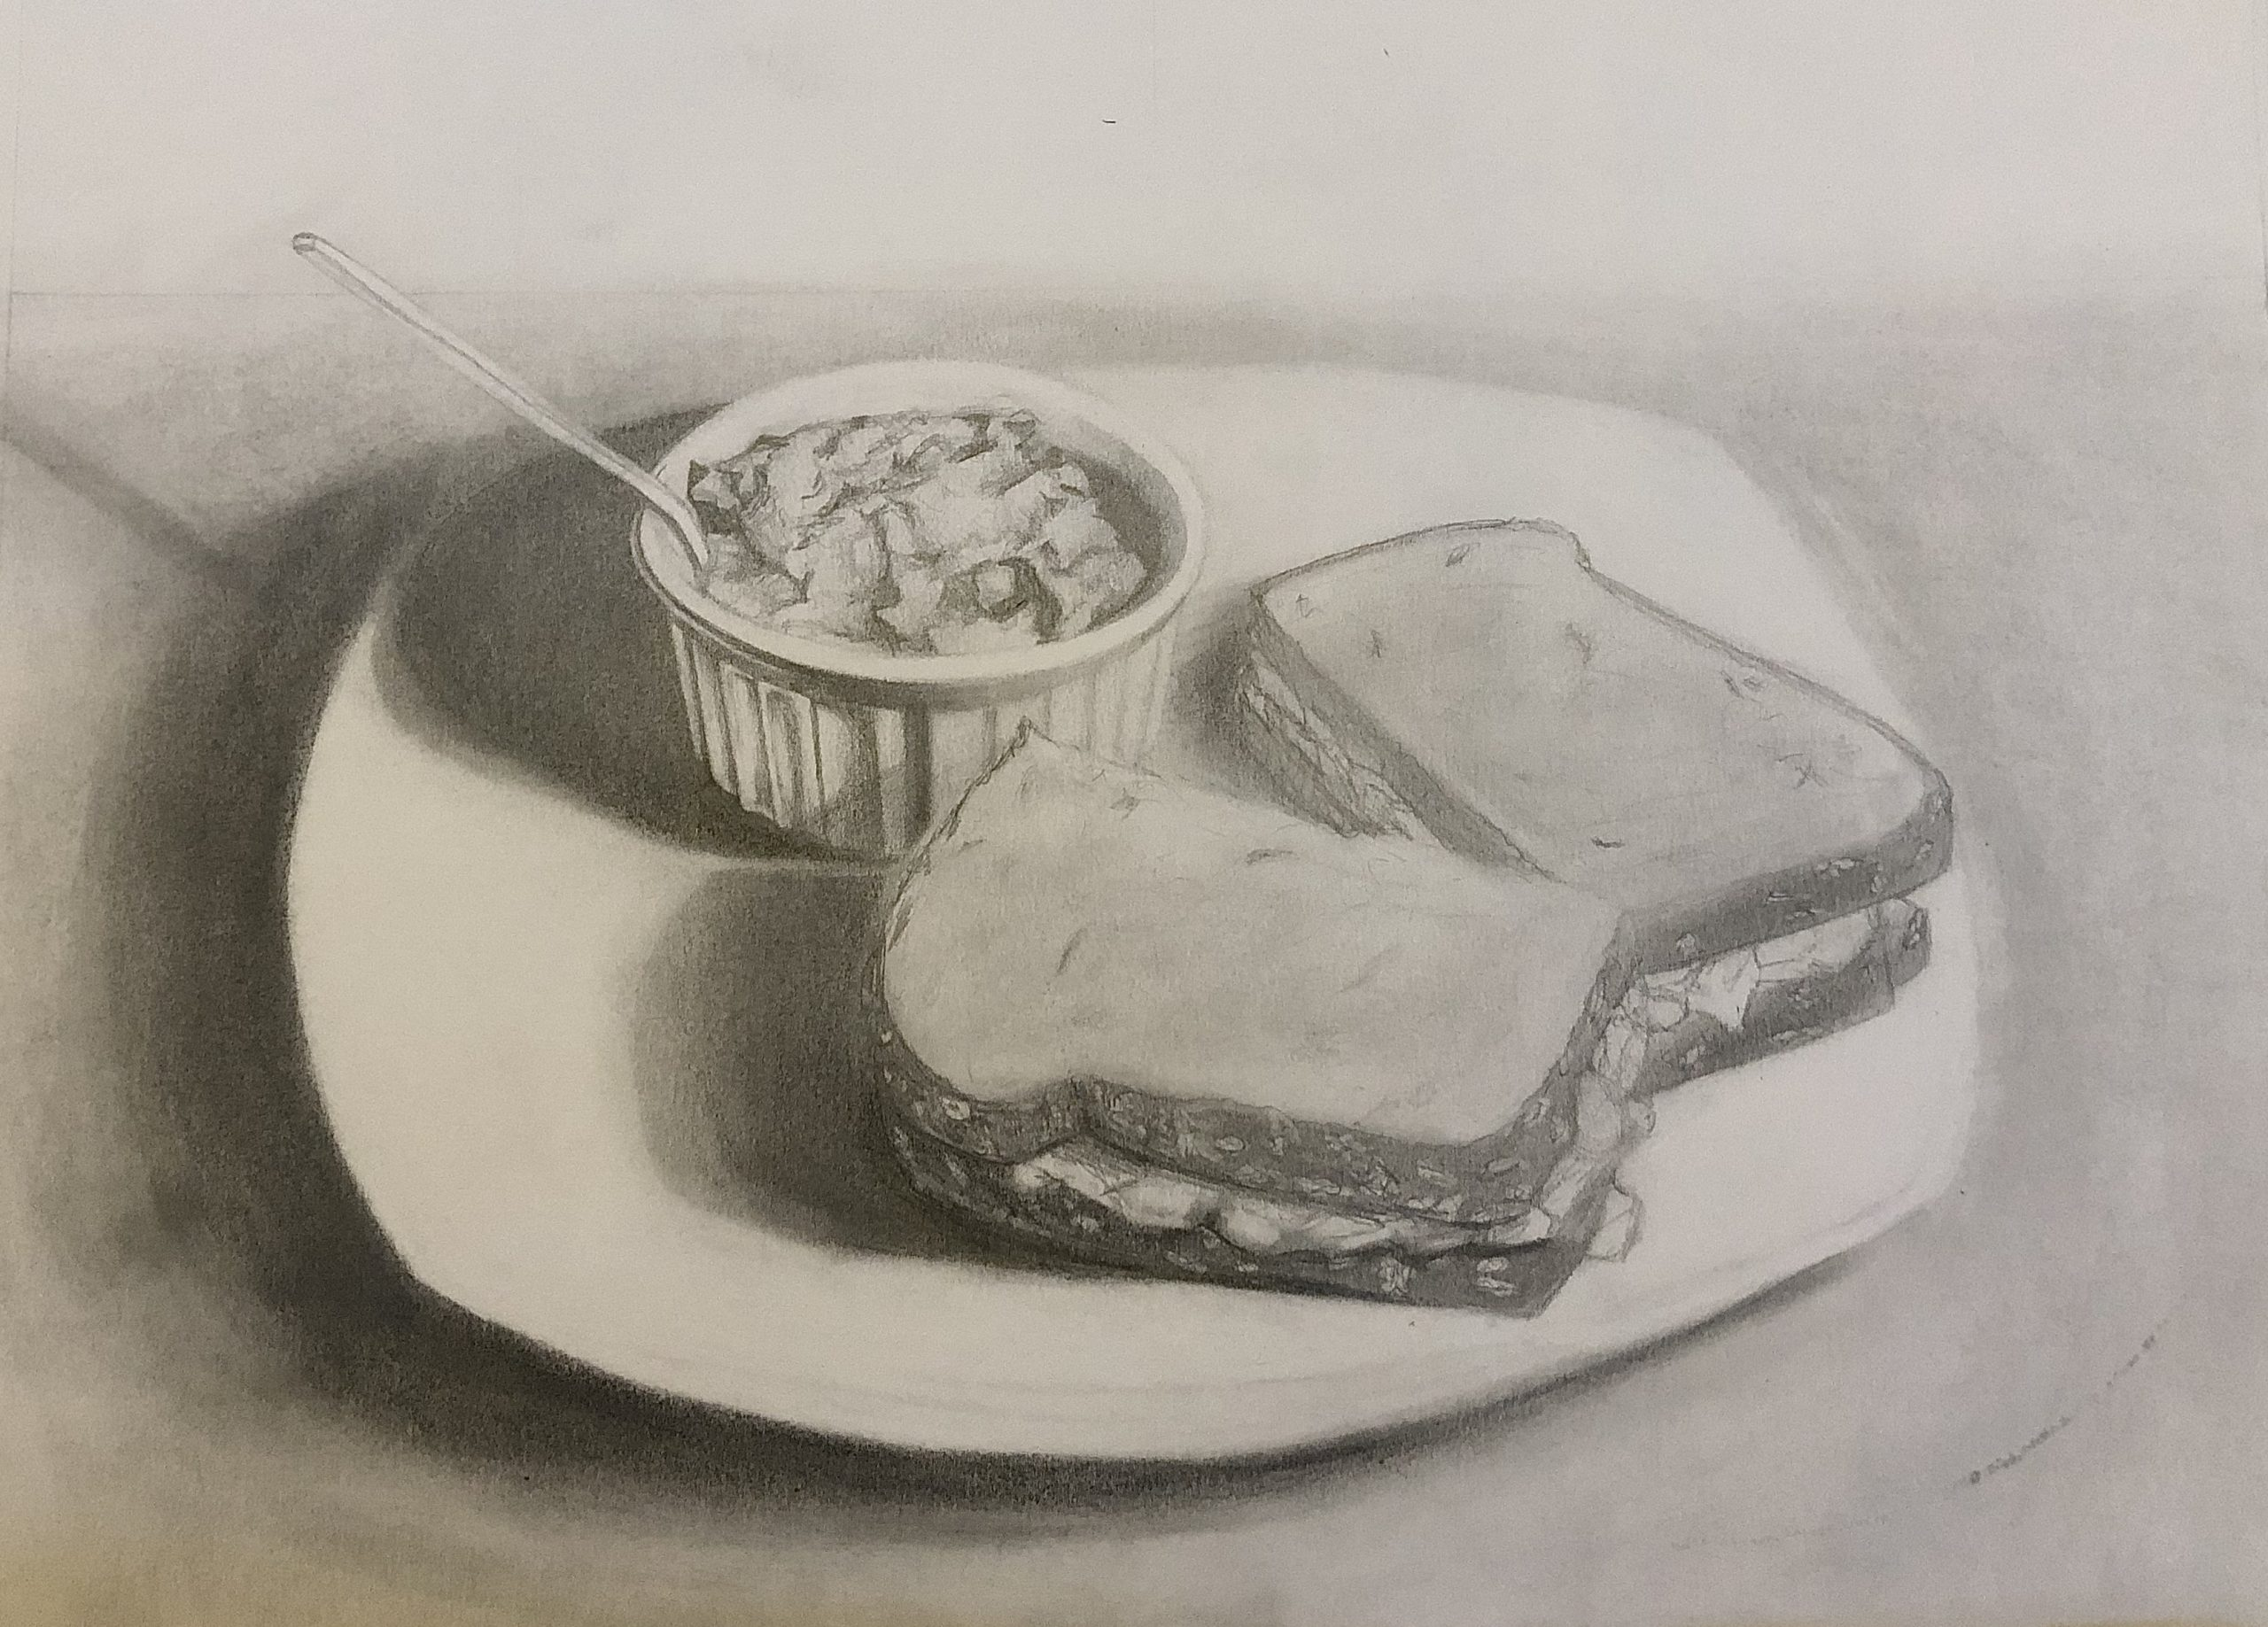 "Ivory Bradshaw; Quarantine Dinner, 2020; Graphite on Paper; 9 x 12""; Drawing"